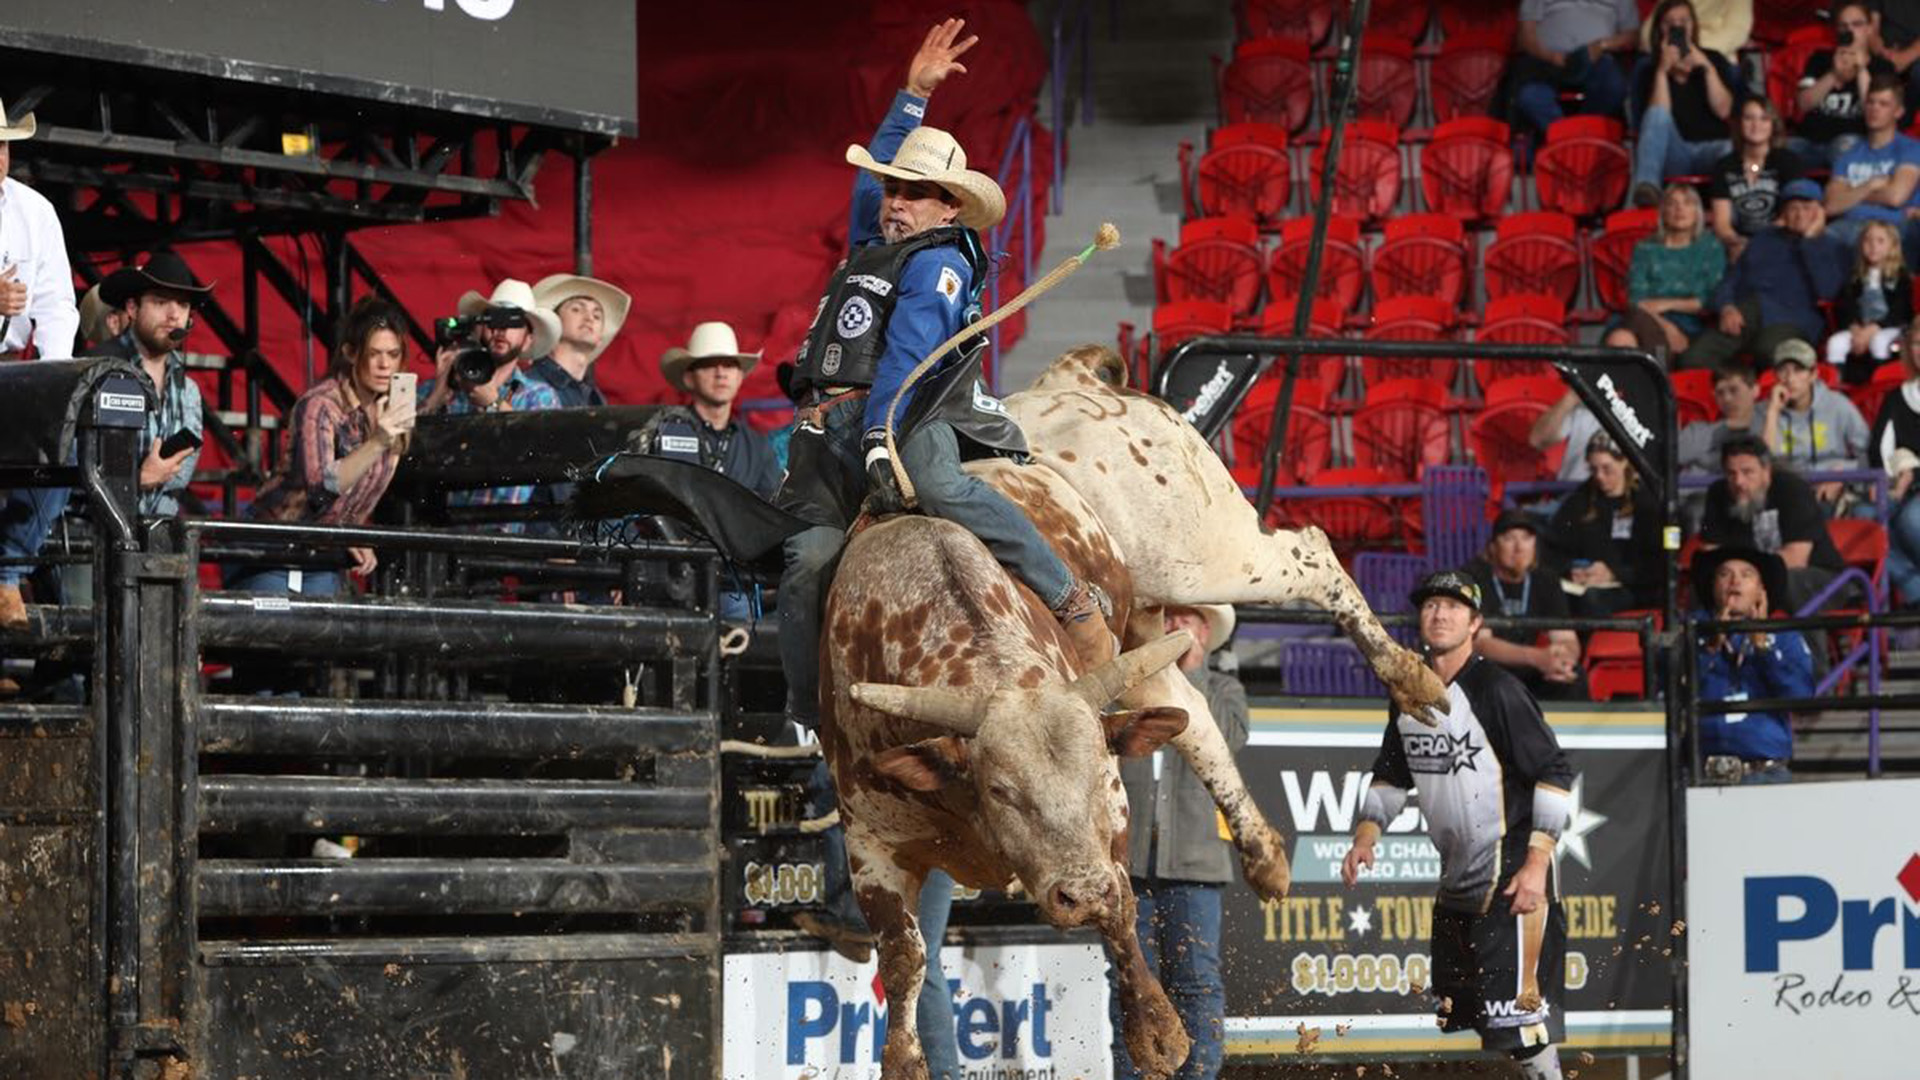 Vieira wins WCRA Title Town Stampede bull riding and $74,777.75